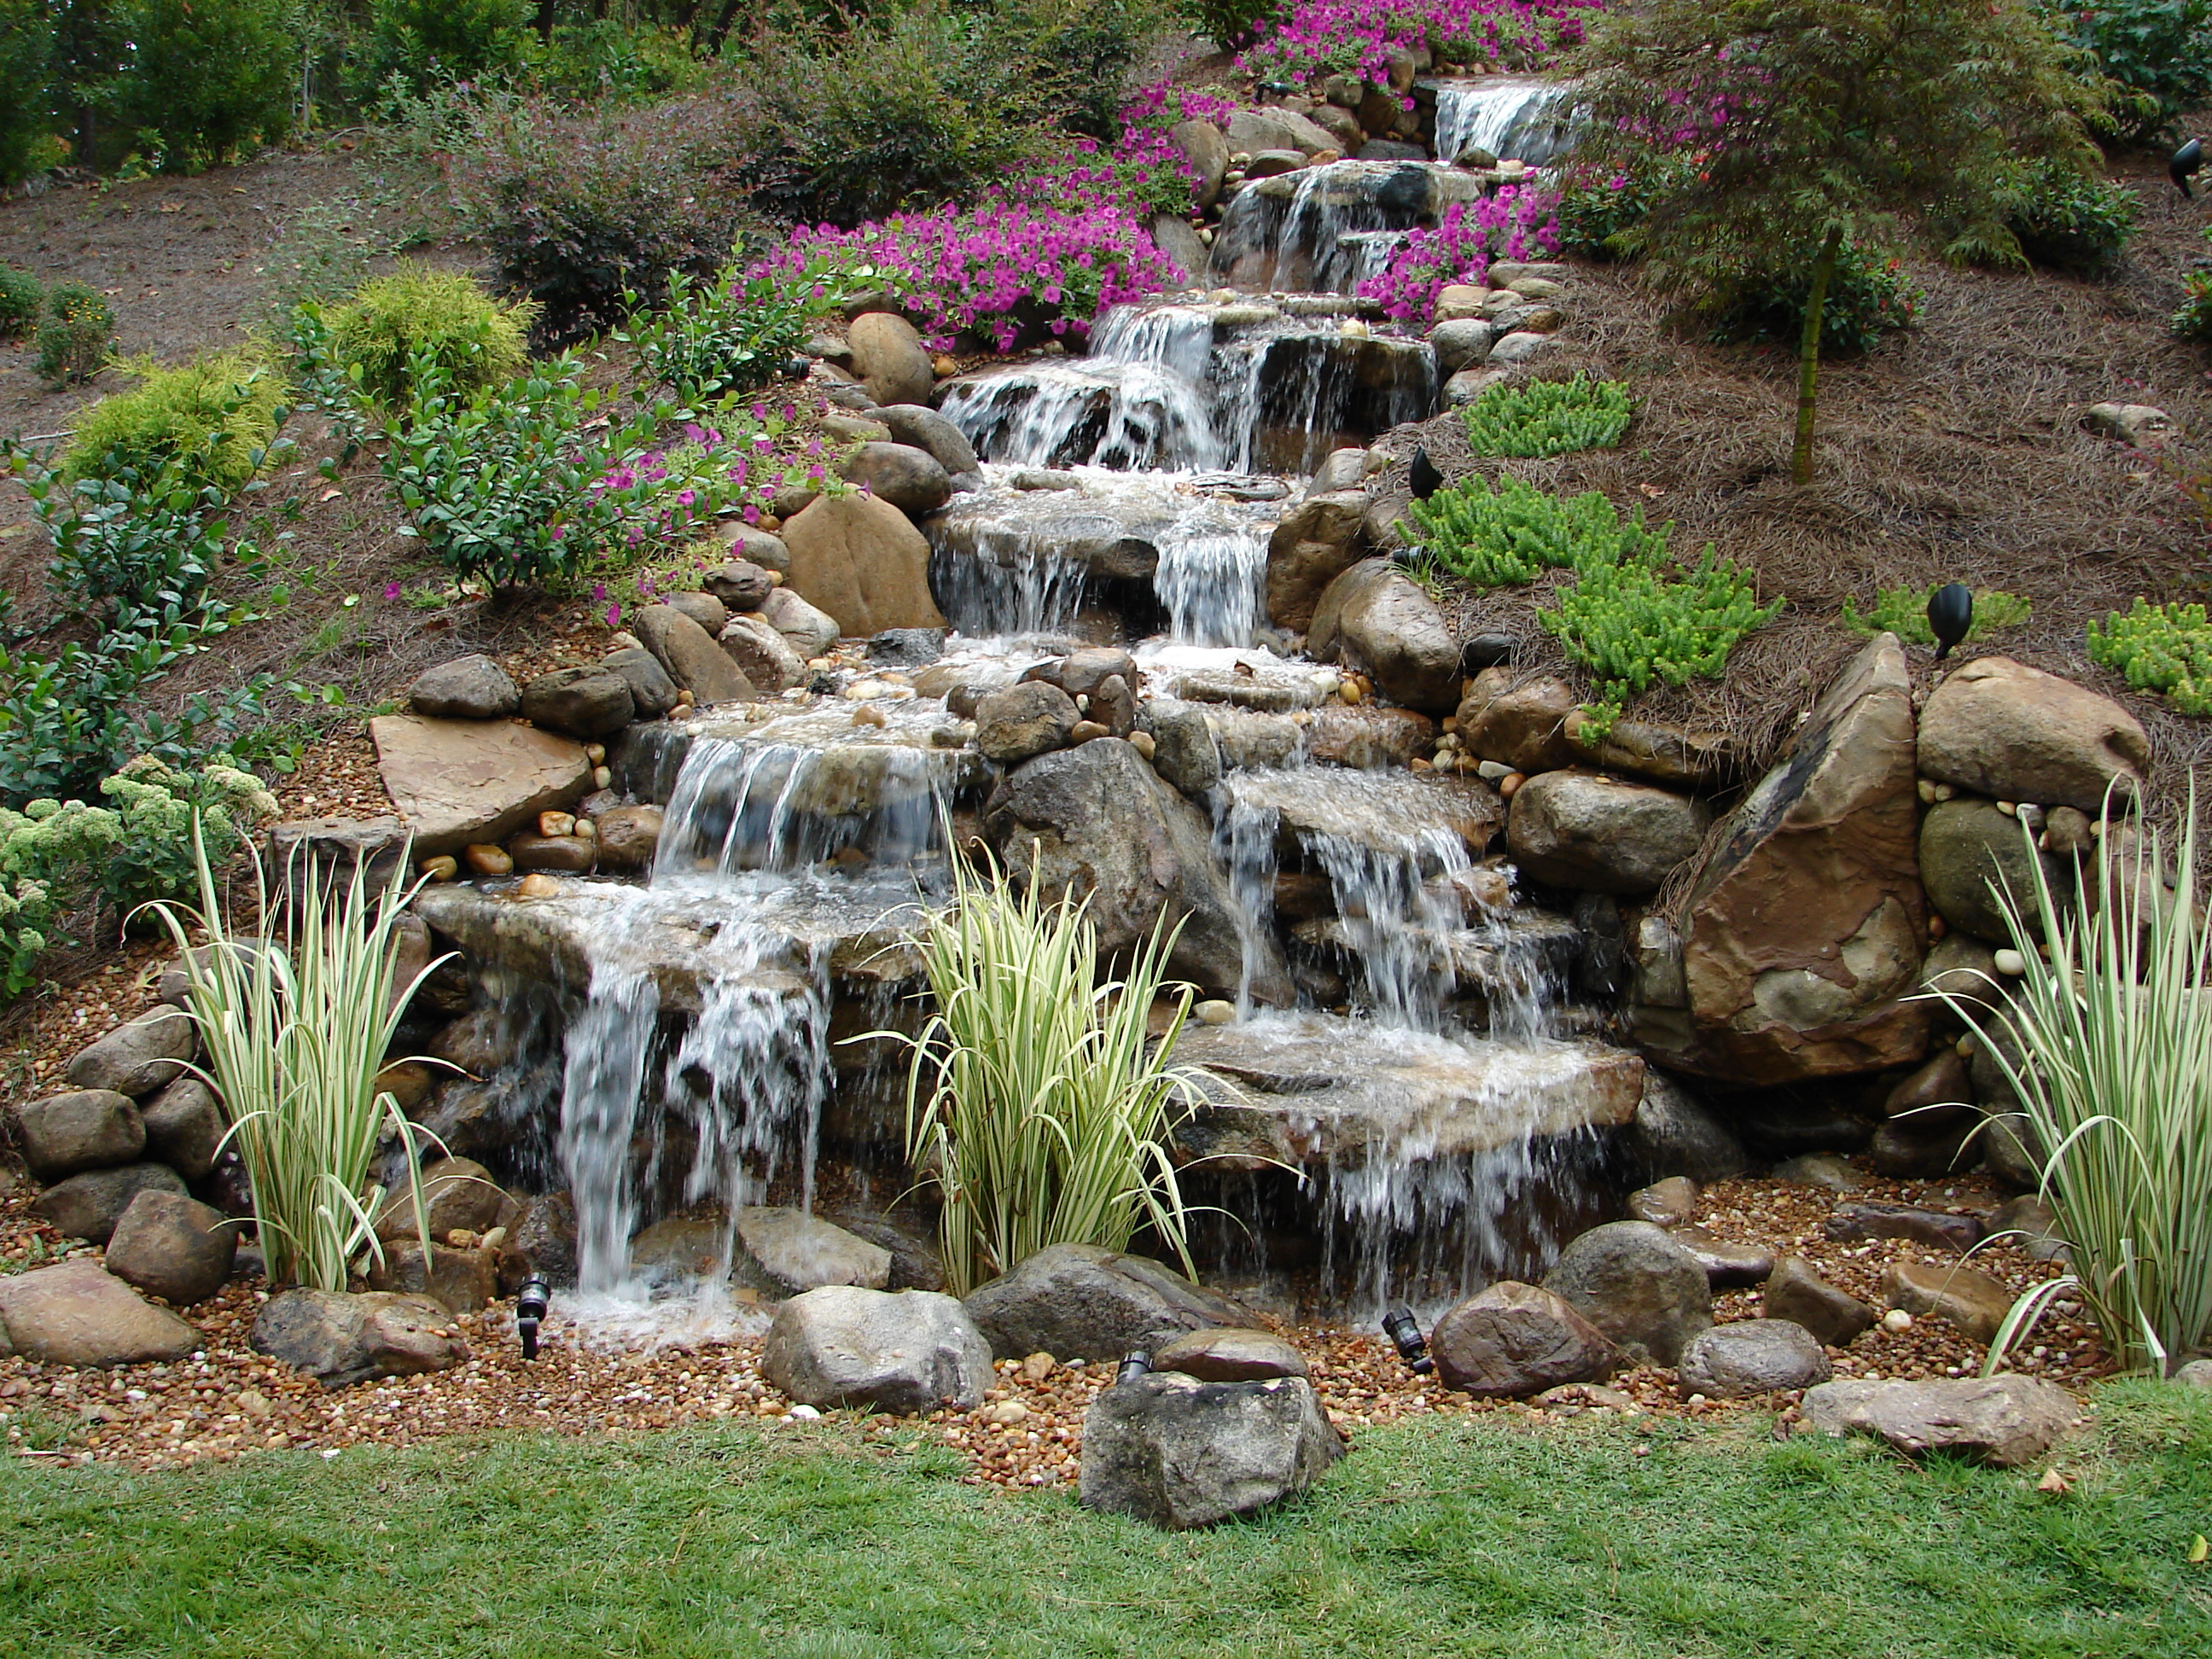 Pondless Waterfalls A Unique Element To Any Backyard GetAWay Gathering Place  Landscaping My